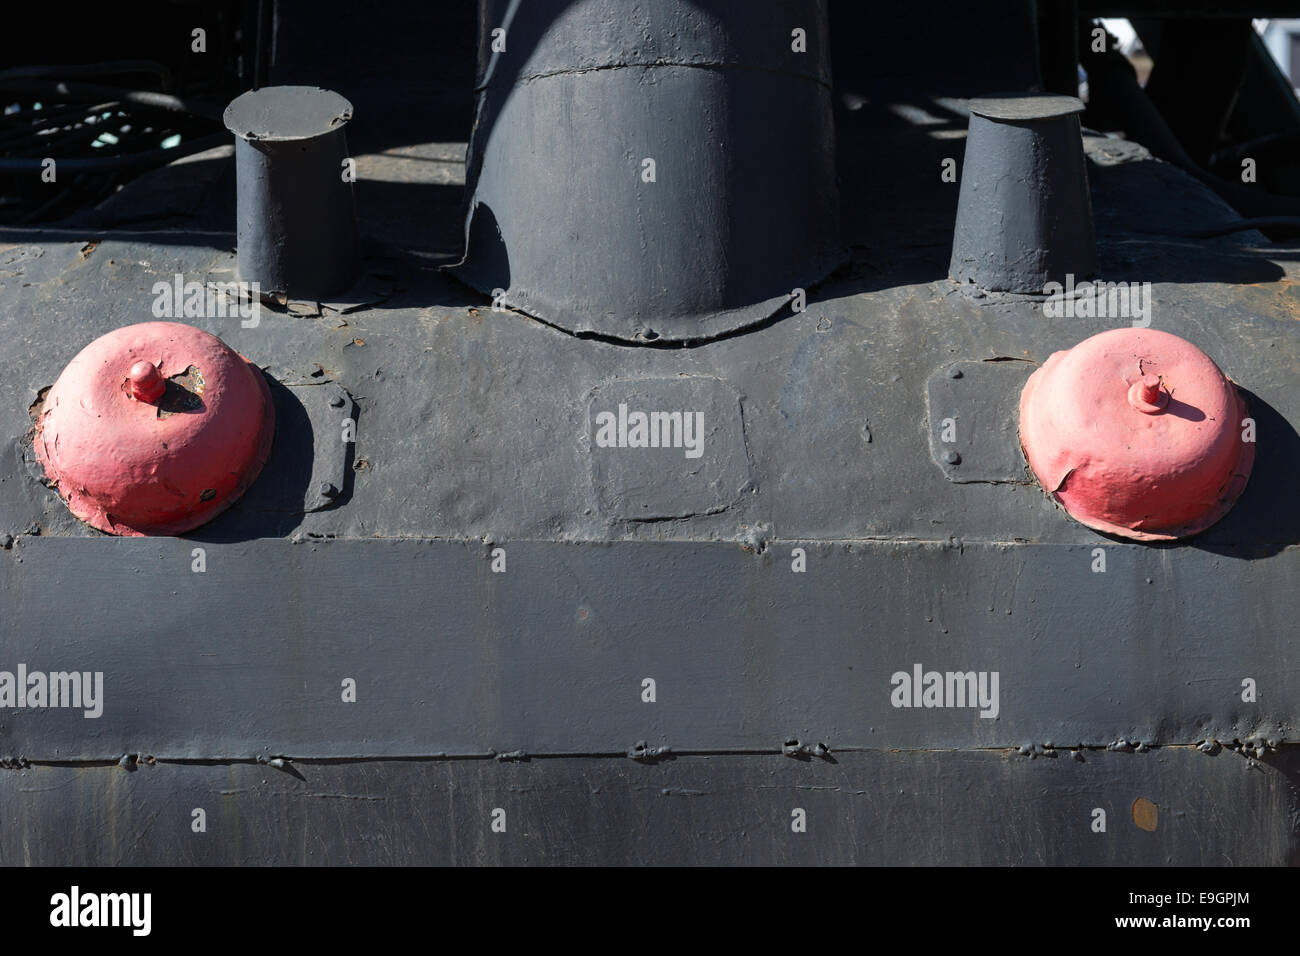 Closeup view of some metallic details of an old steam locomotive. Black and red colors of an iron construction - Stock Image